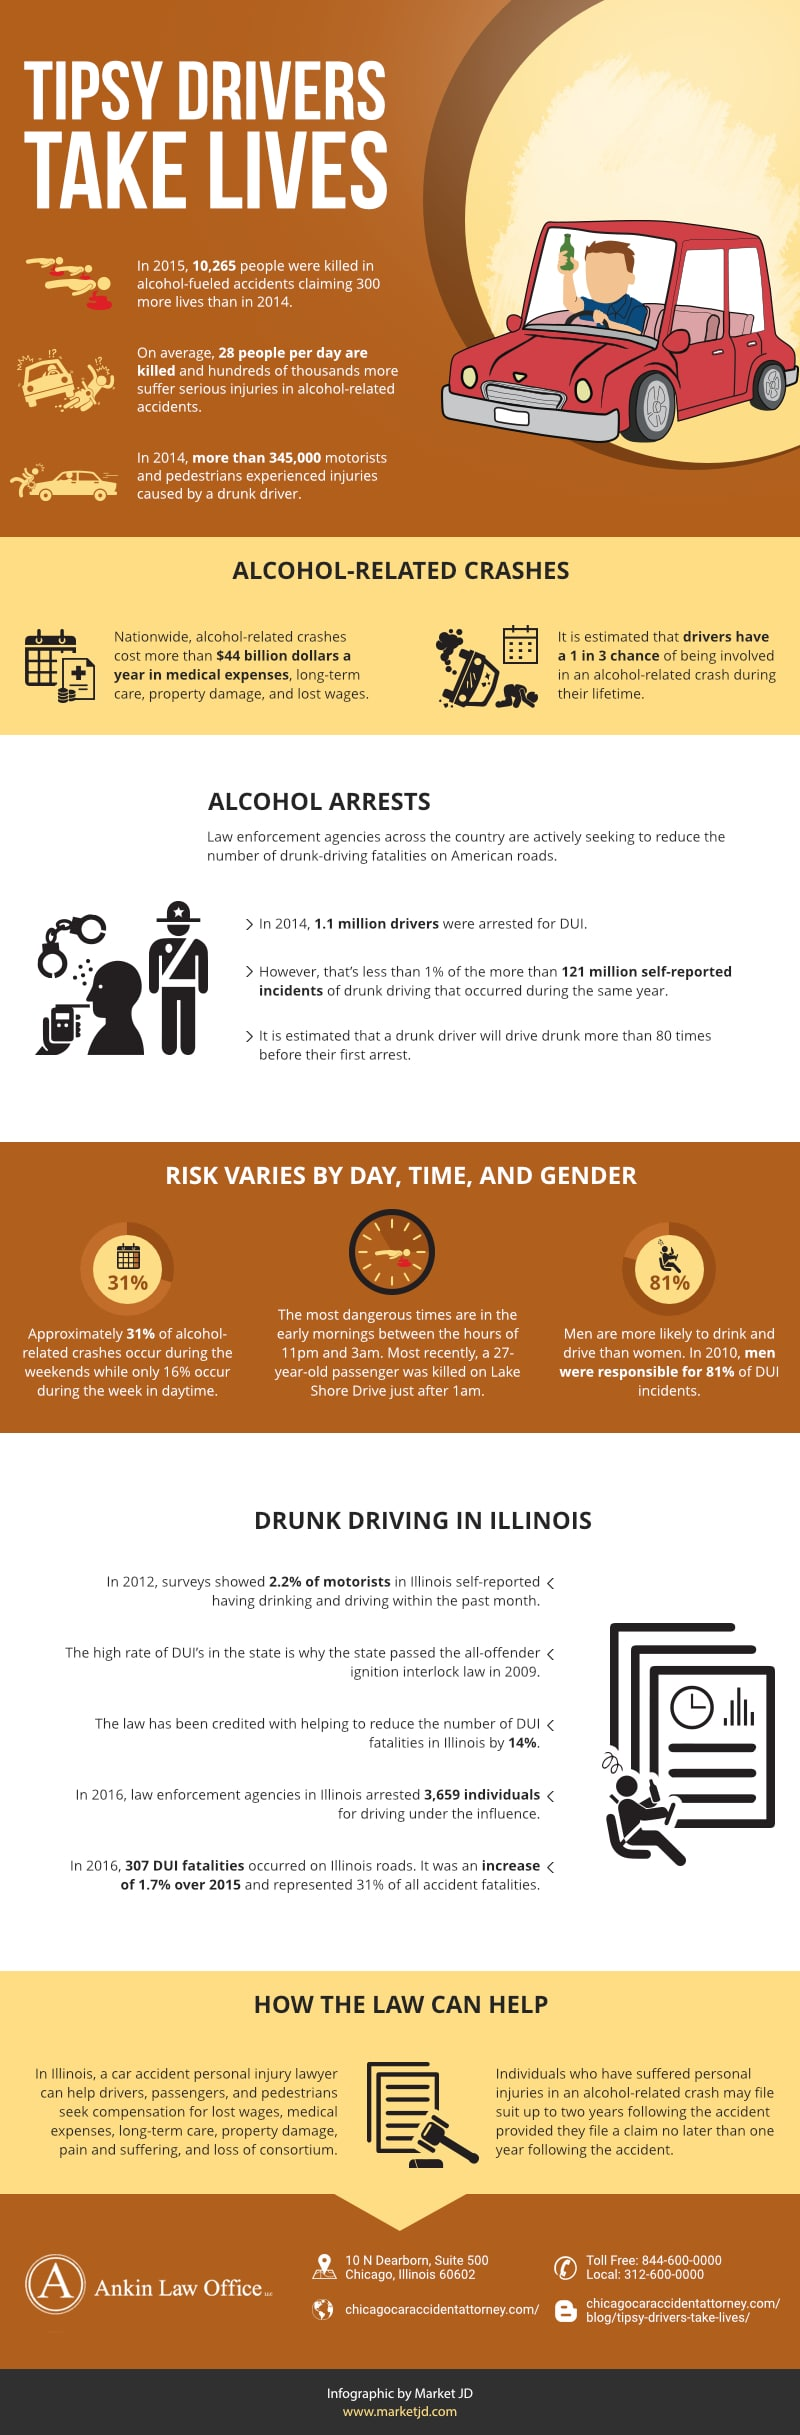 infographic_Tipsy Drivers Take Lives